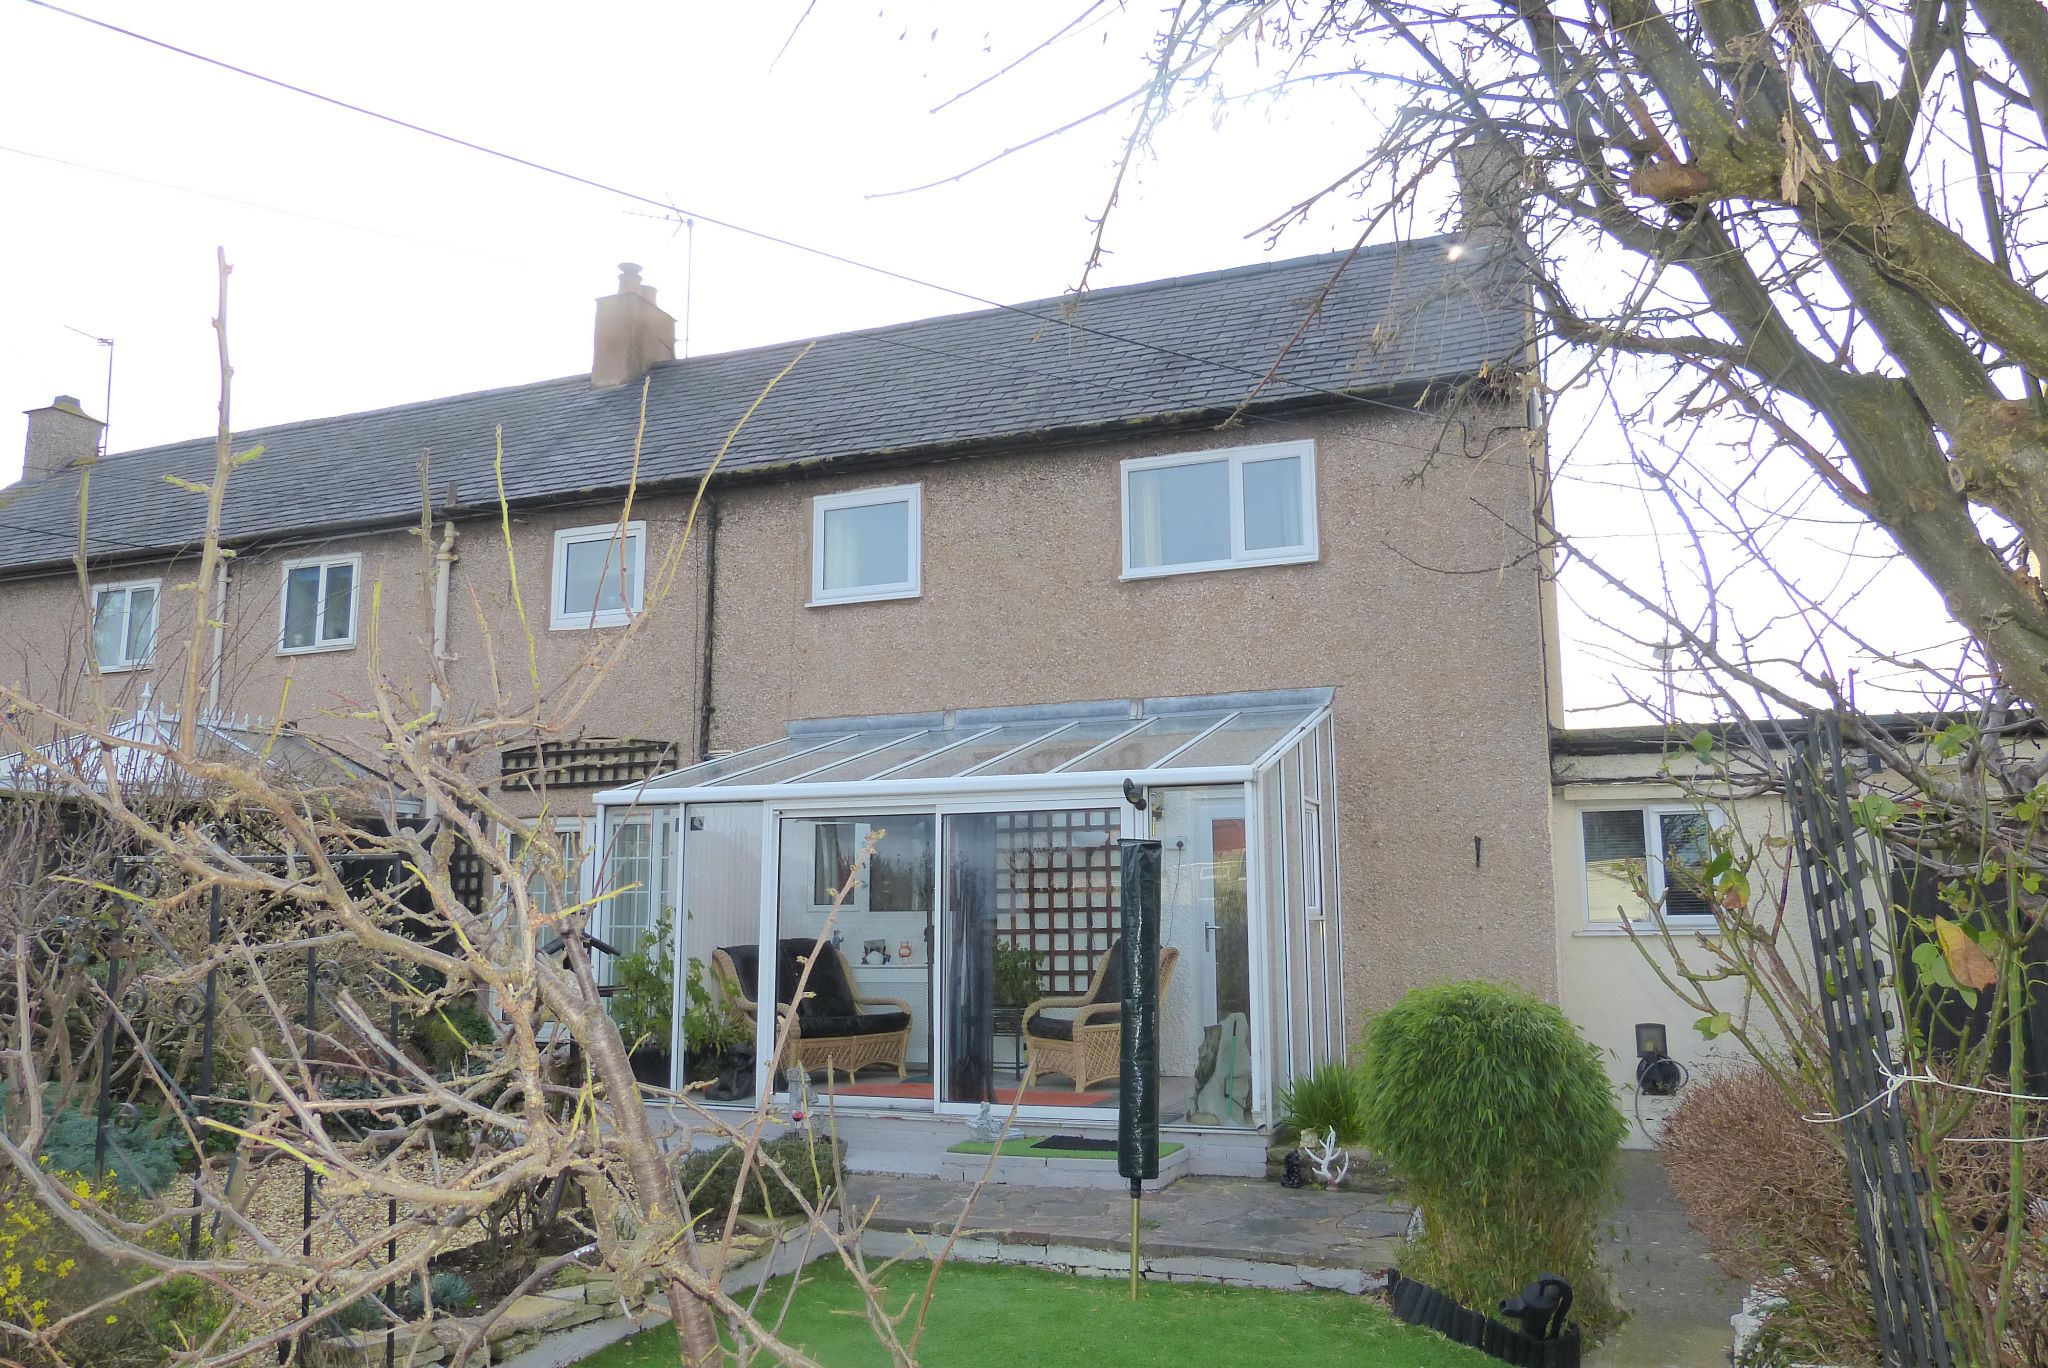 3 bedroom semi-detached house For Sale in Abergele - Photograph 10